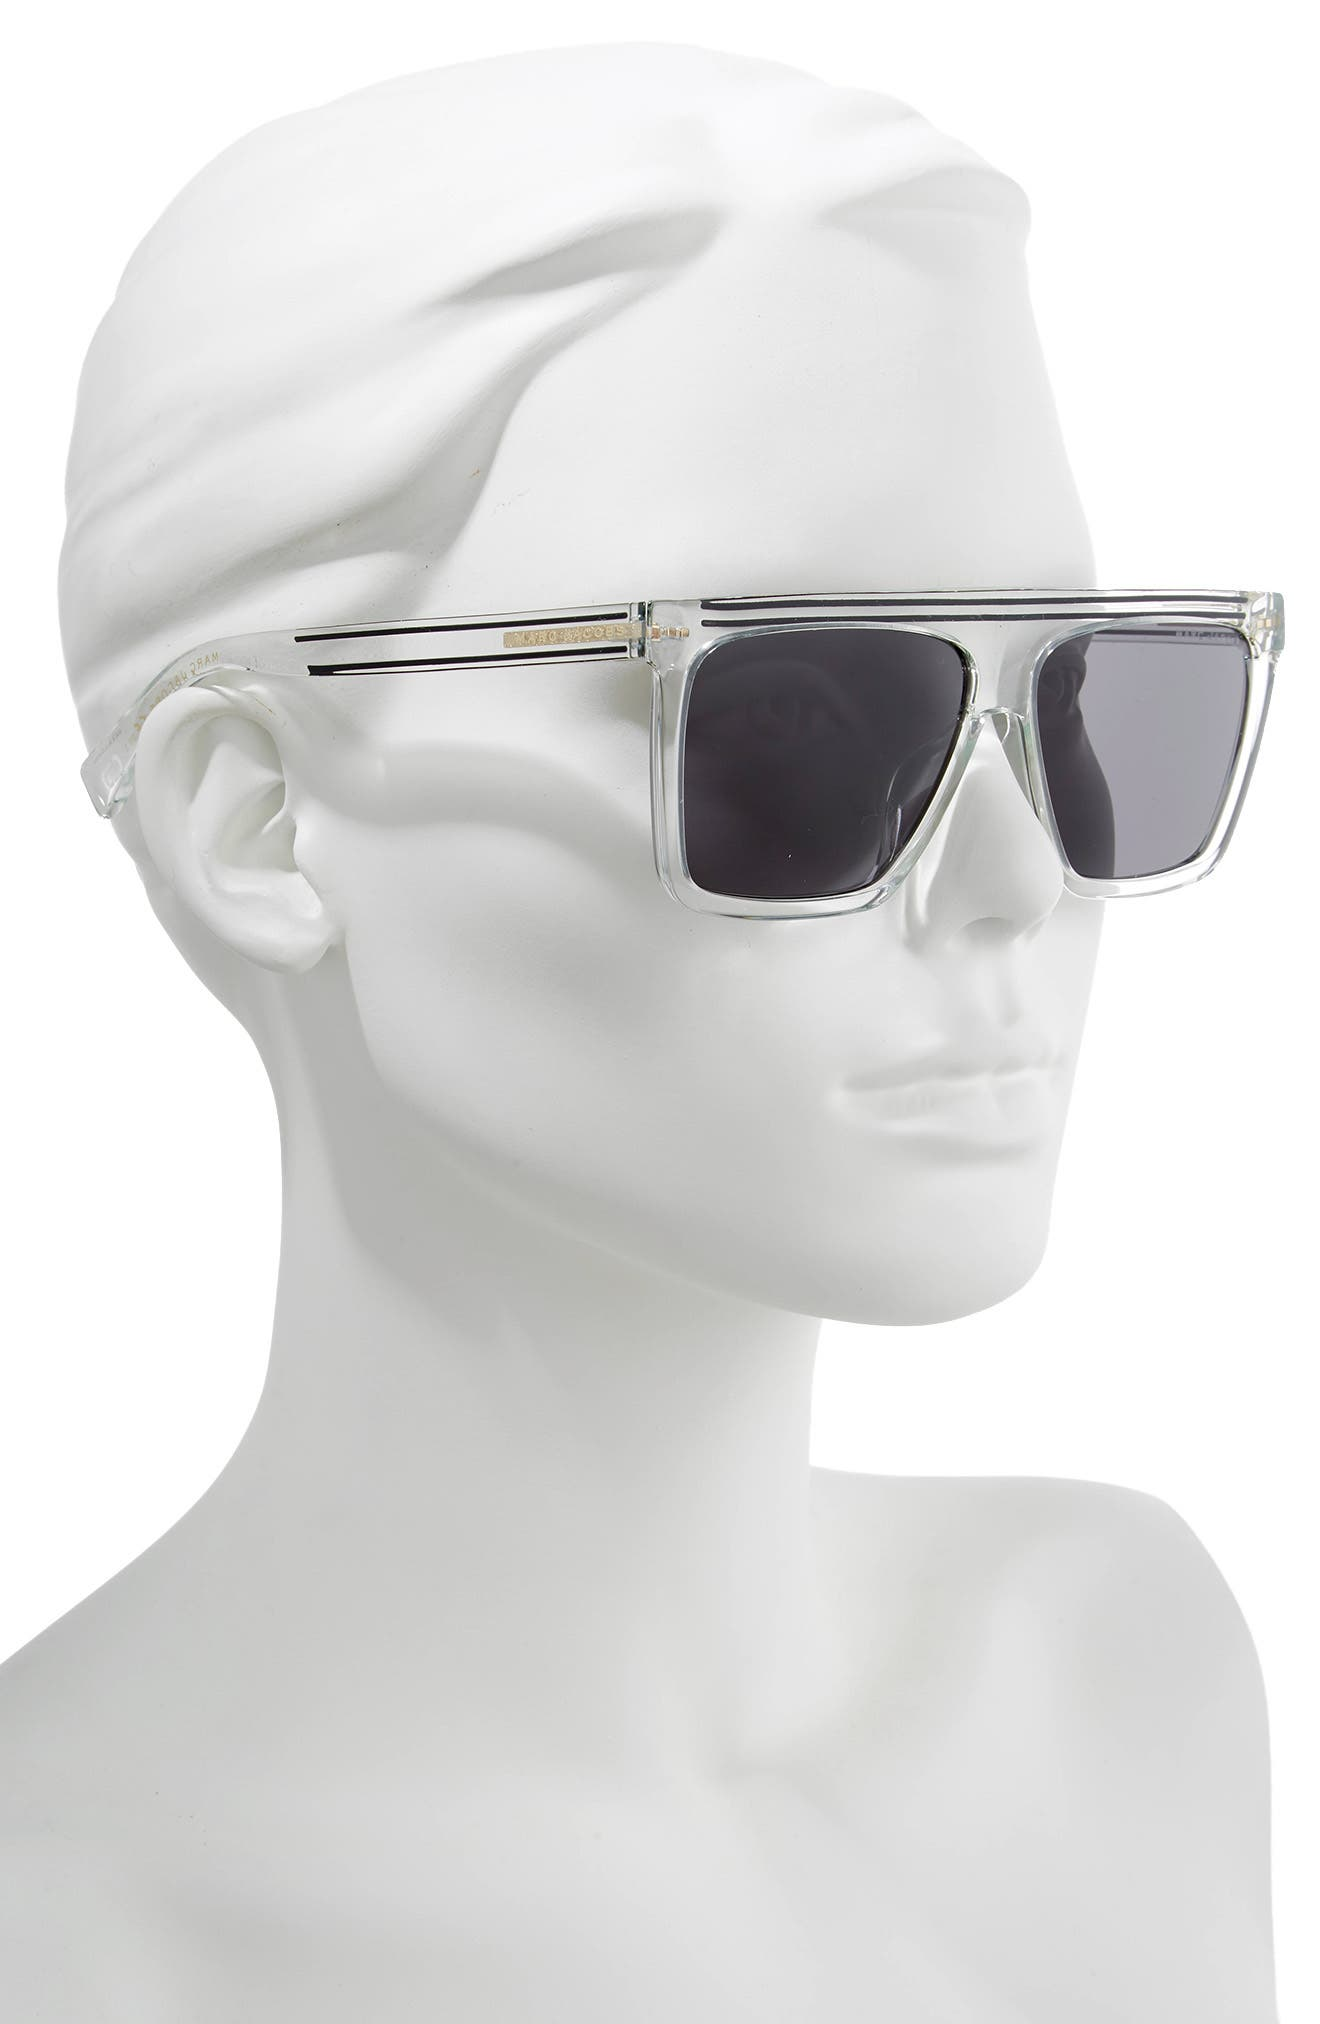 MARC JACOBS,                             59mm Flat Top Sunglasses,                             Alternate thumbnail 2, color,                             CRYSTAL